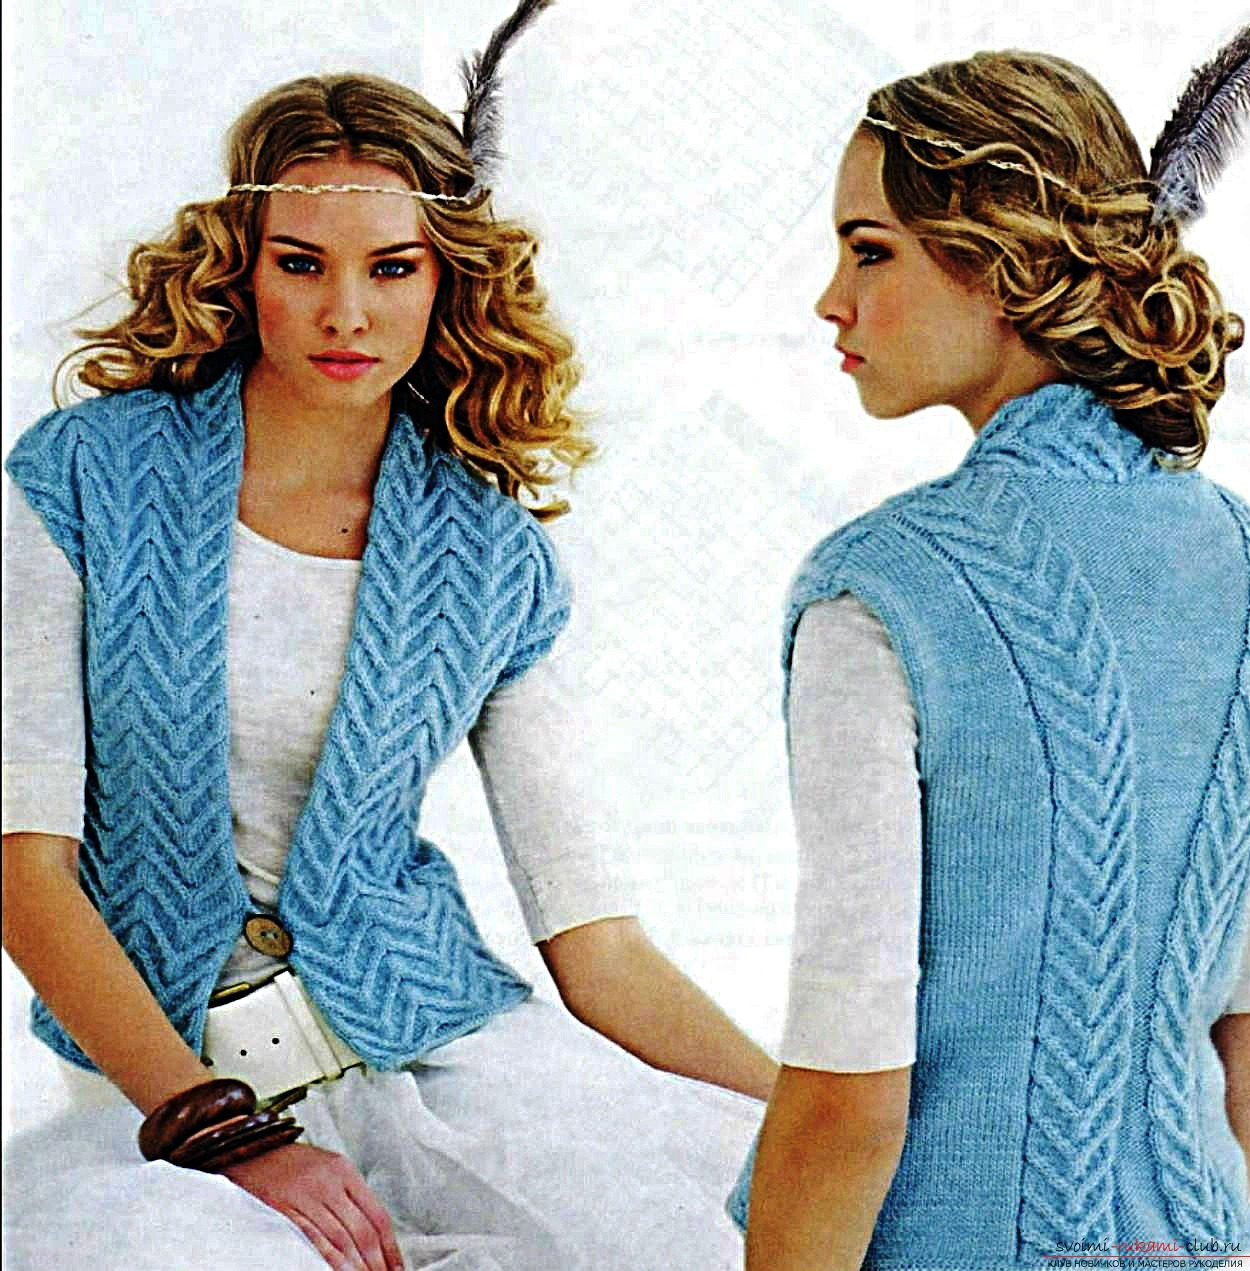 knitted blue vest for women with a braid pattern. Photo # 2